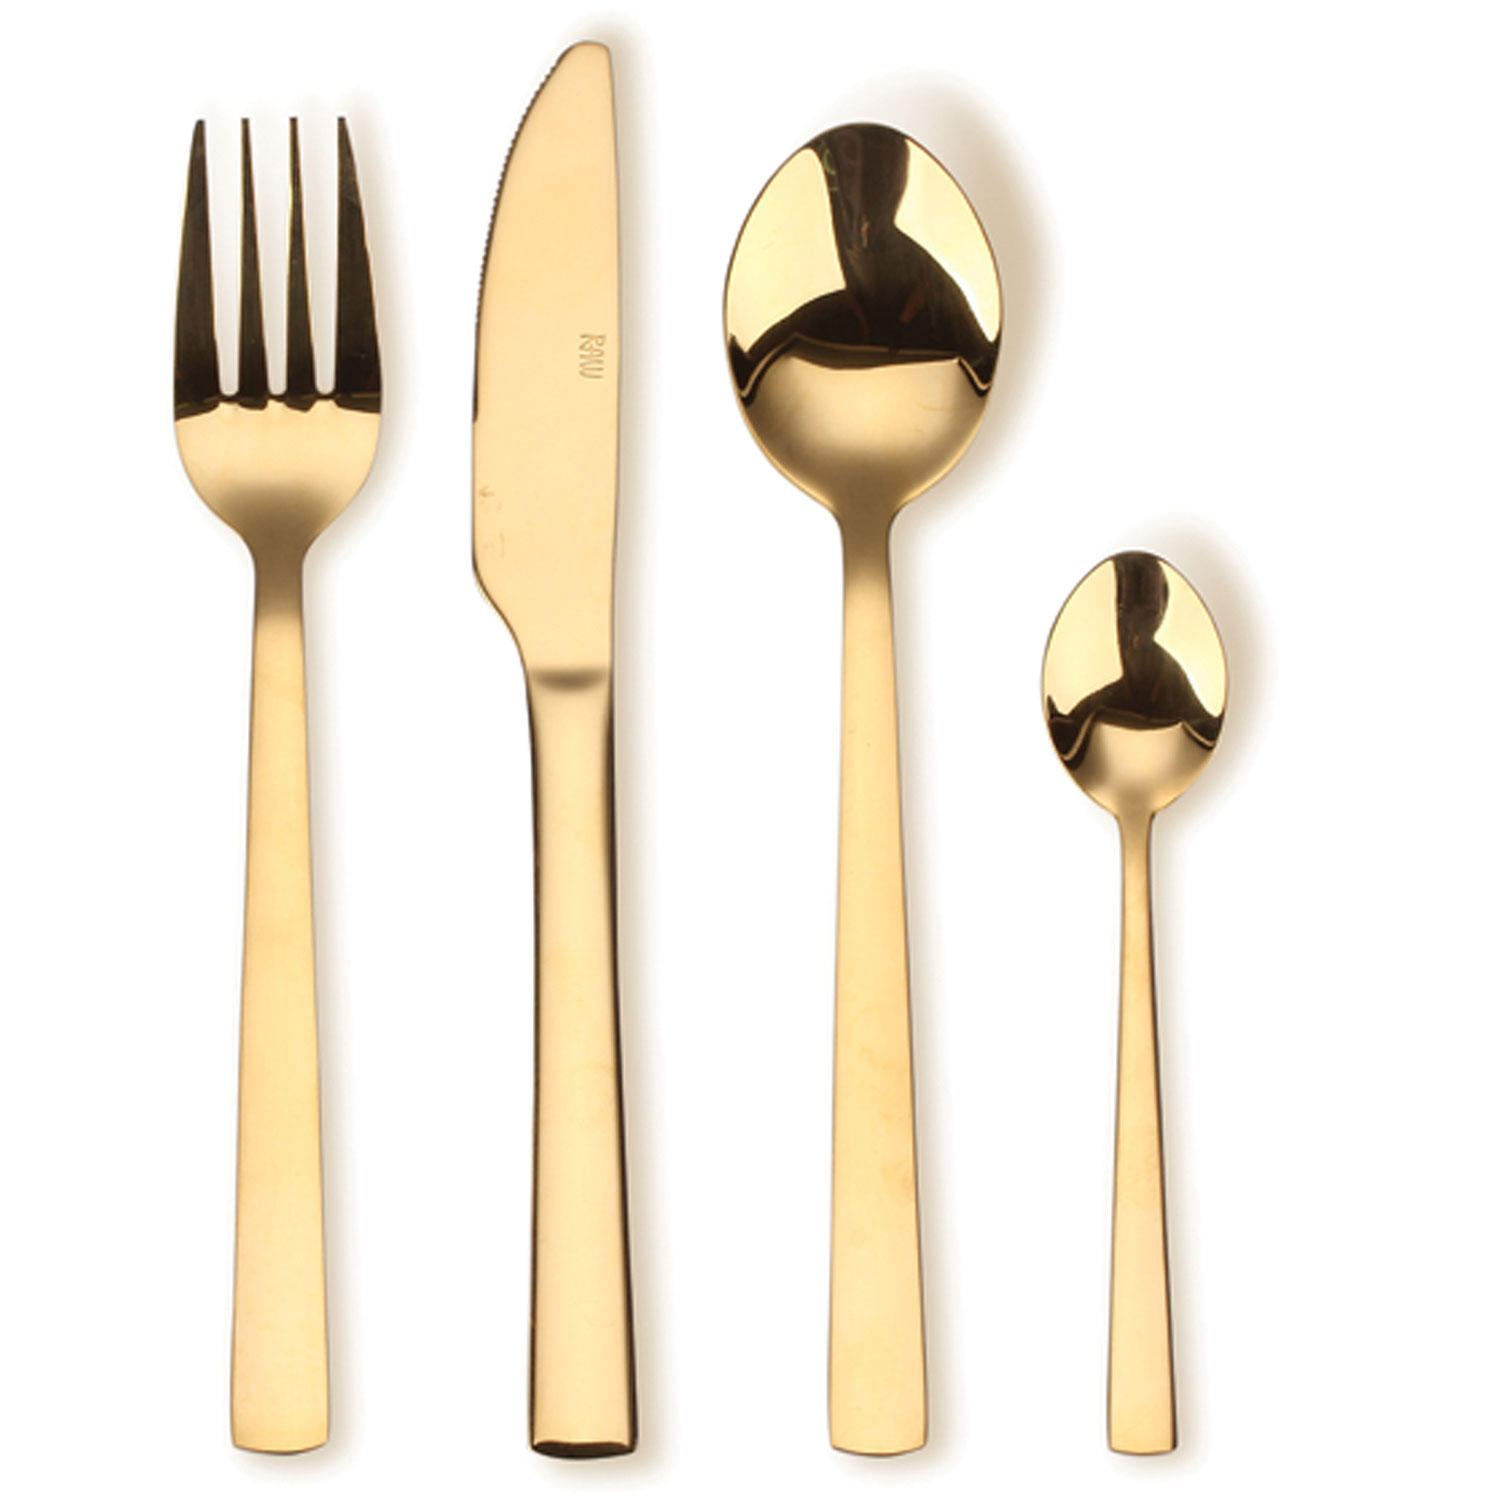 Gold Cutlery Sets Raw Cutlery Set 16 Pcs Gold